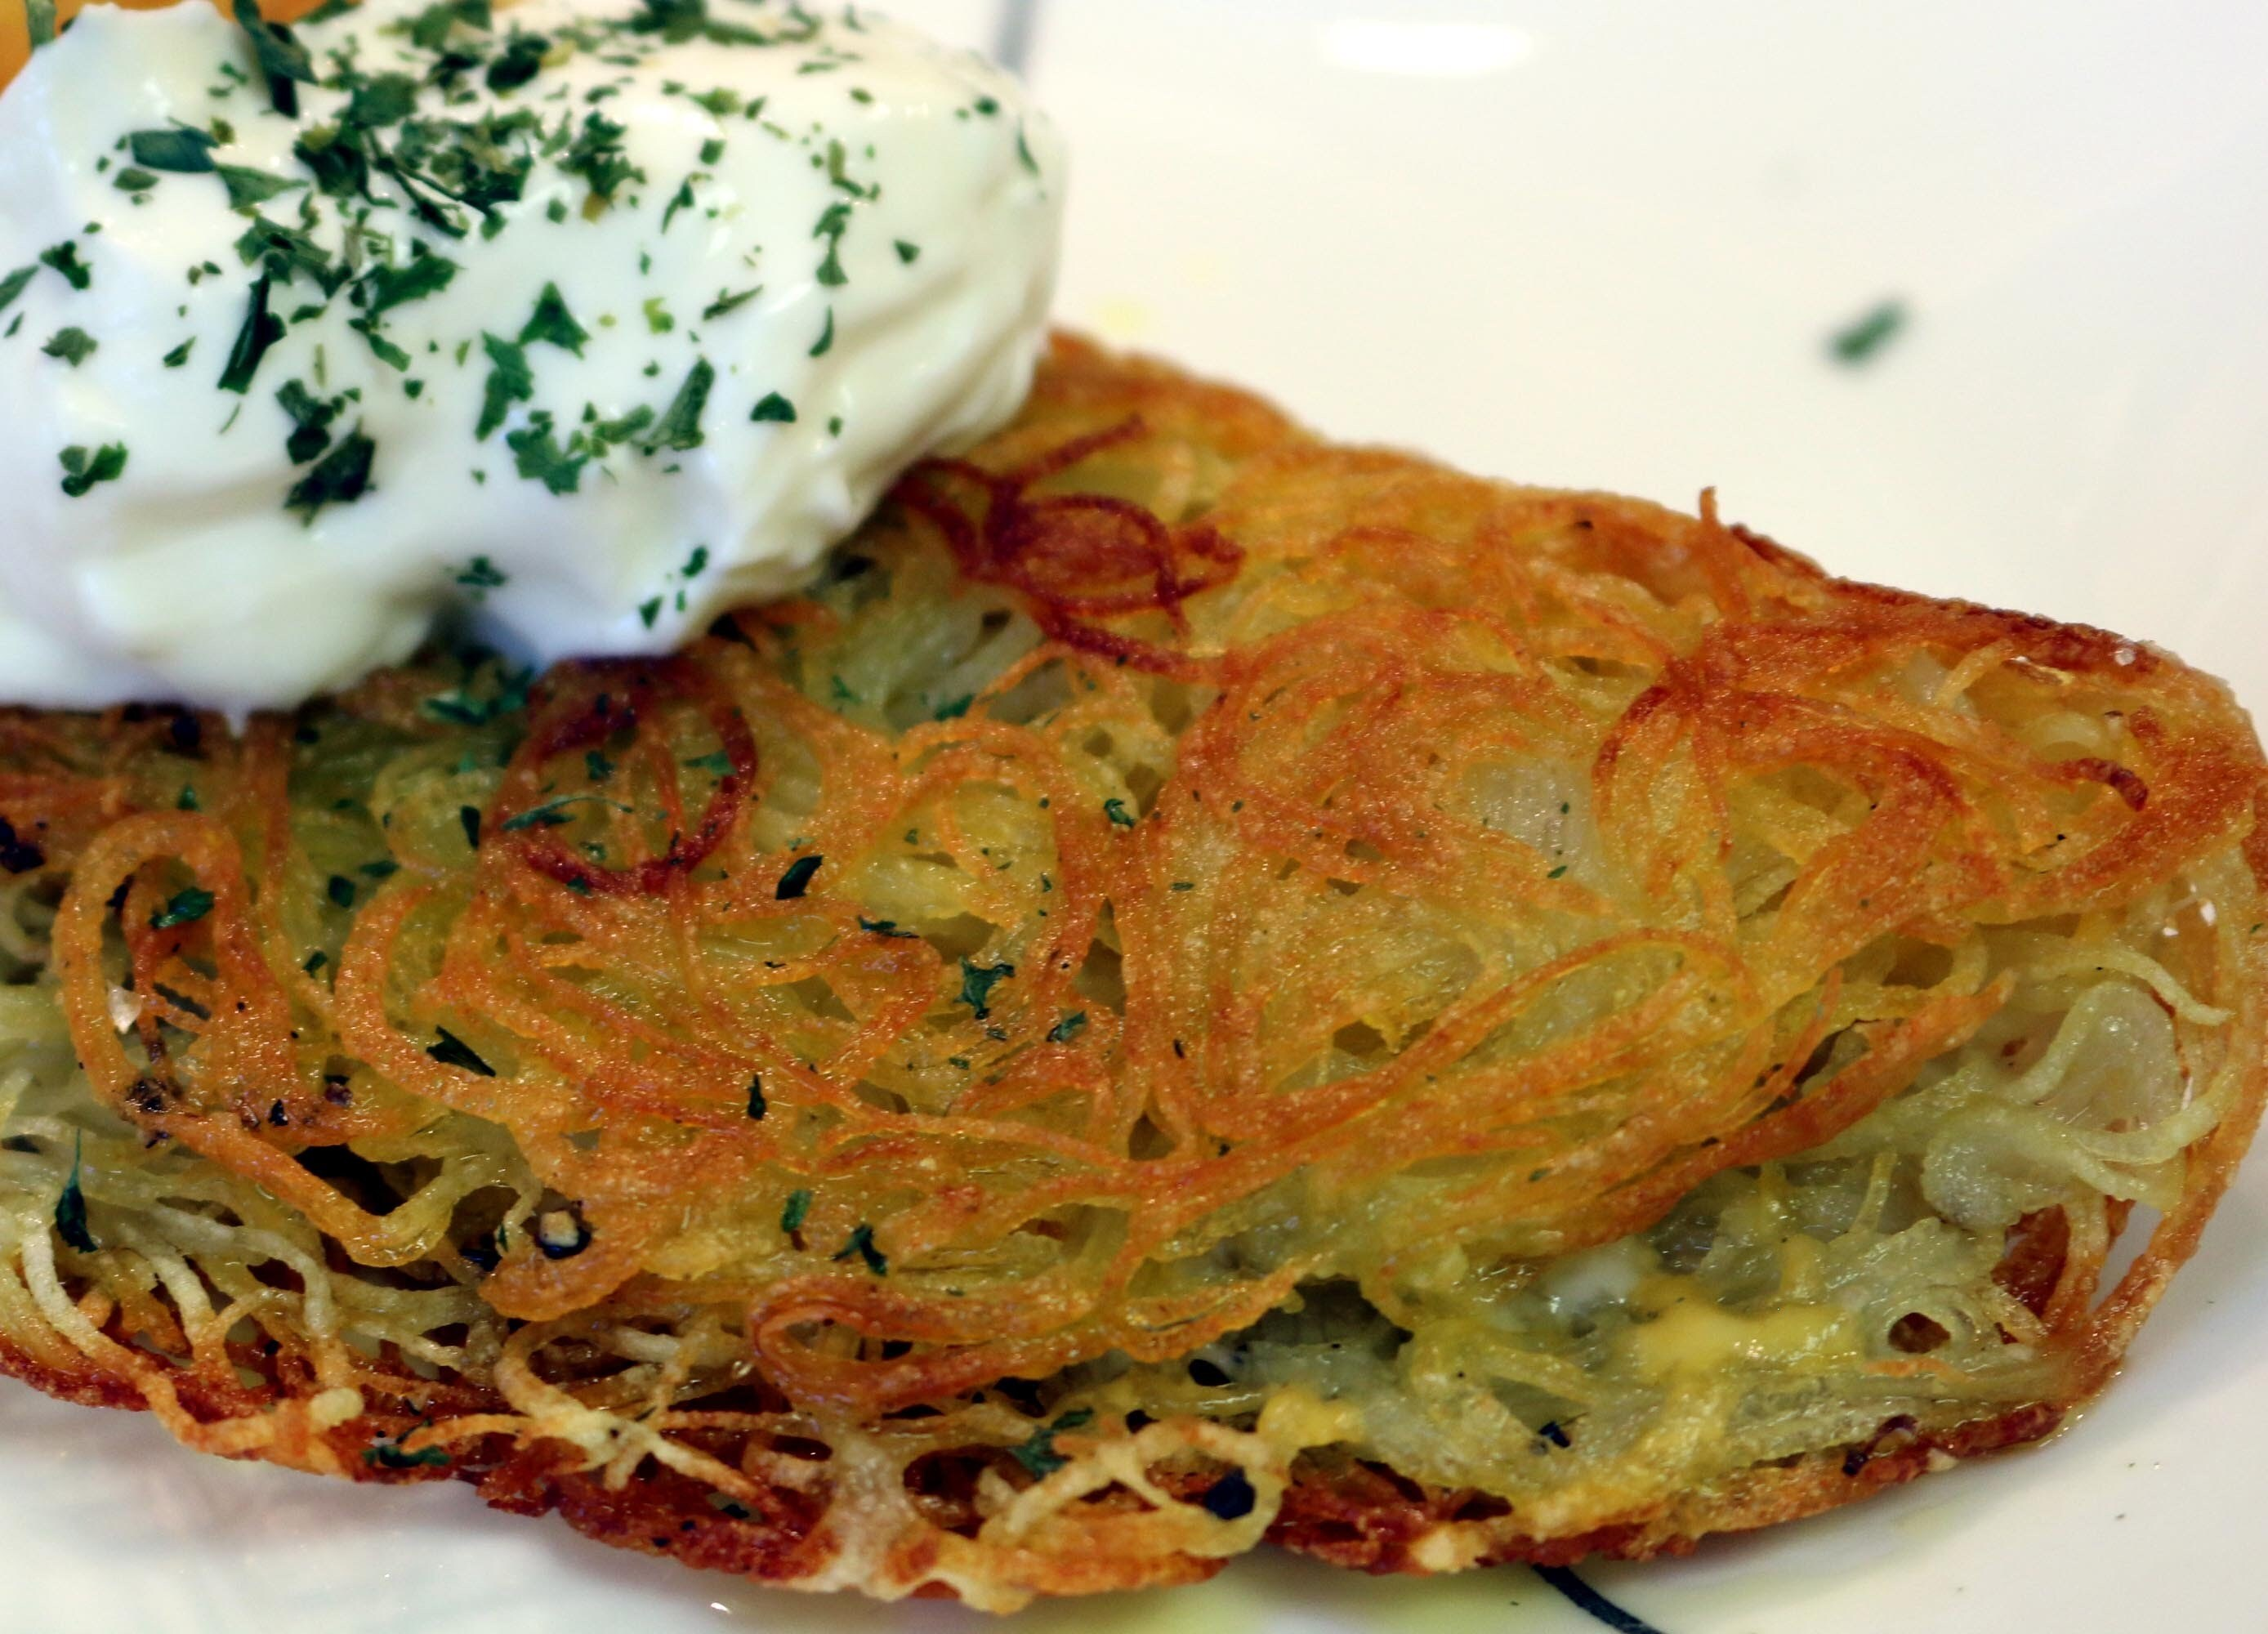 10 minute easy potato rosti recipe with Chef Cristian Feher | Food Chain TV - YouTube